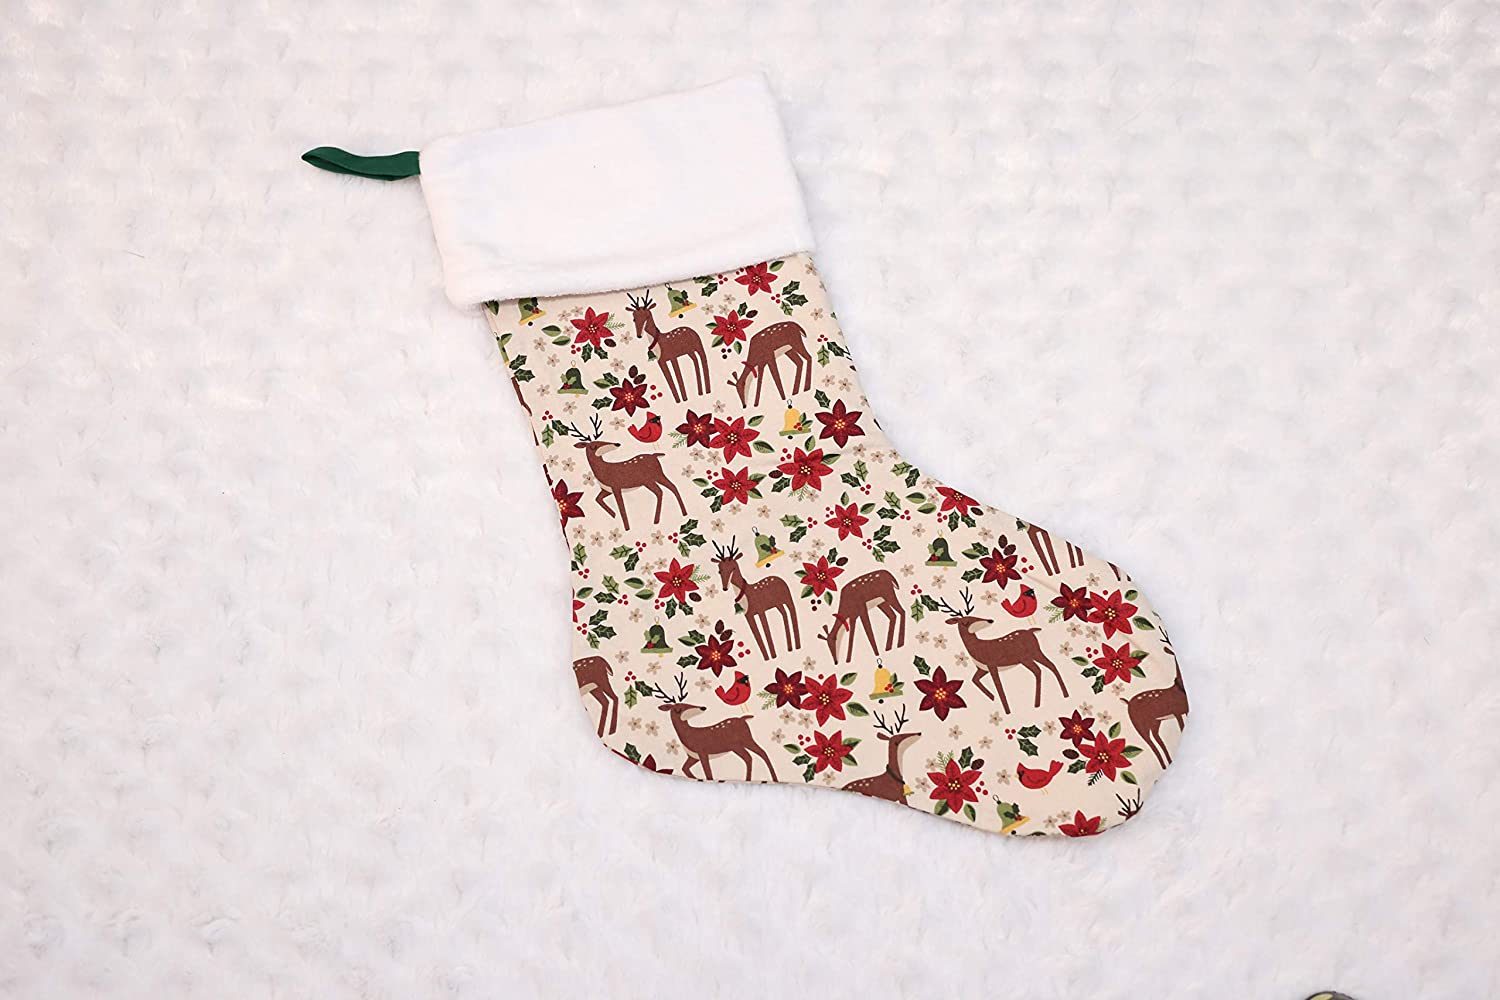 Woodland Deer Now on sale and Price reduction Stocking Christmas Poinsettia